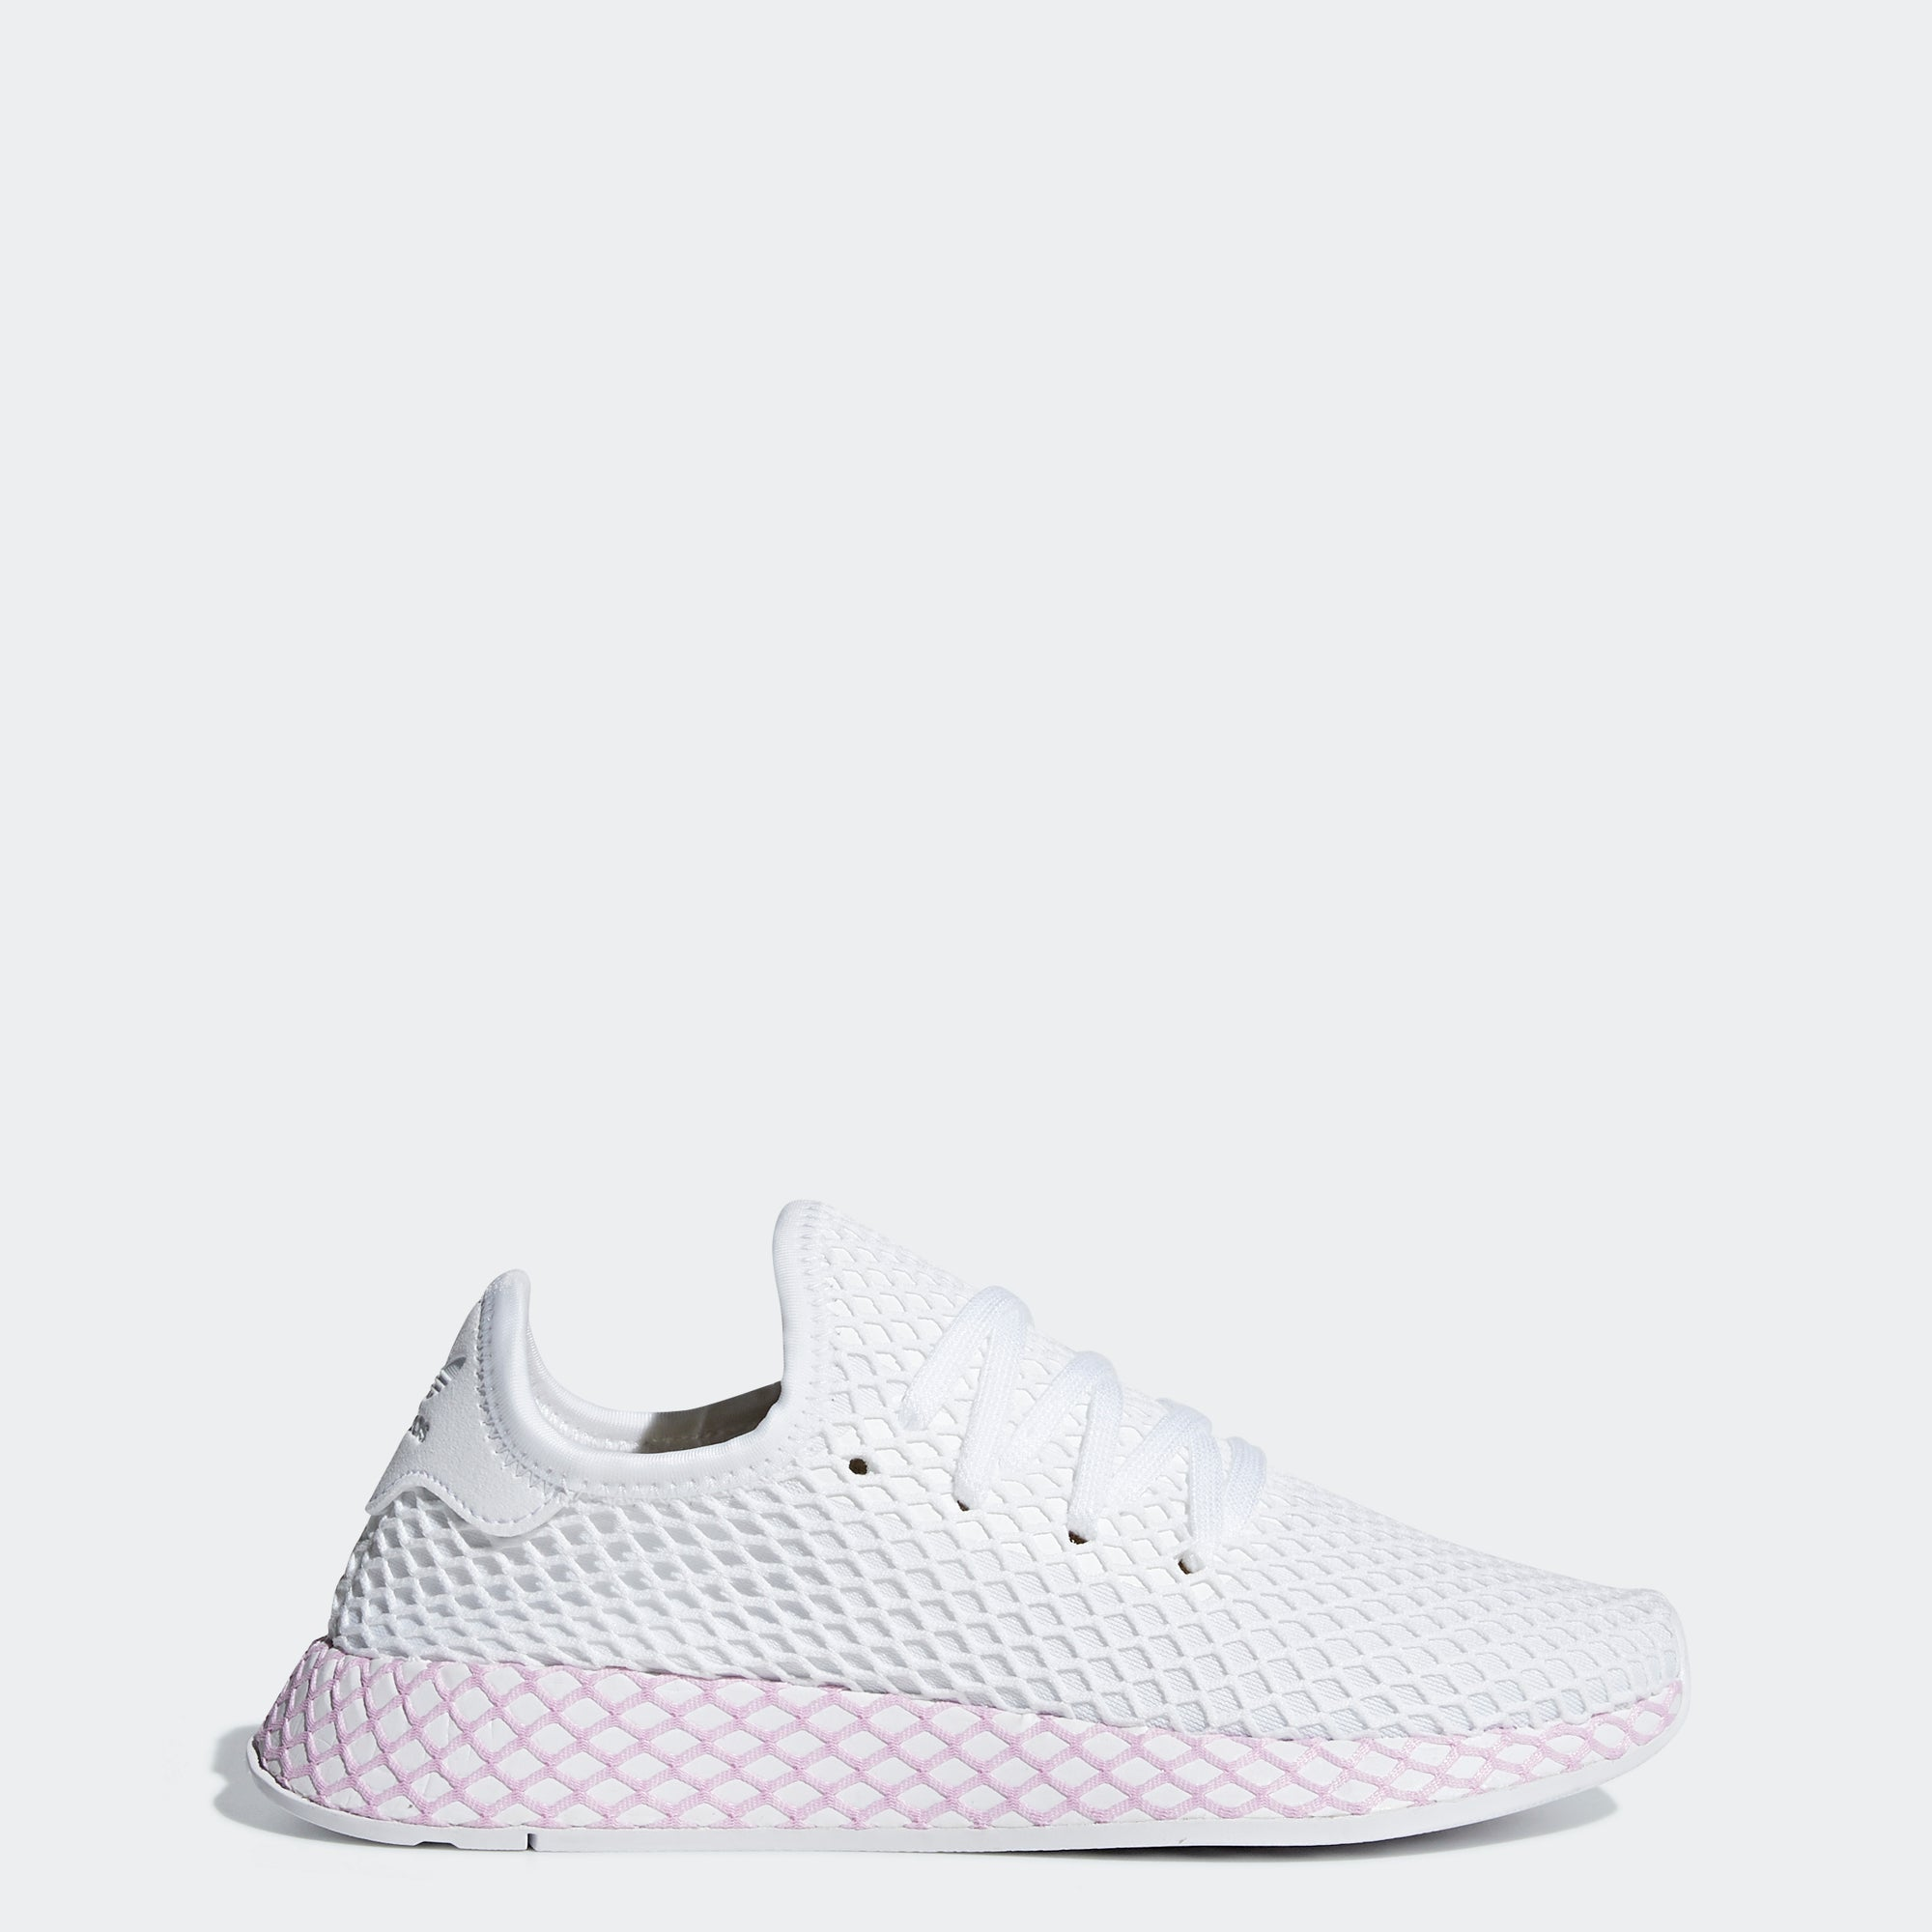 adidas Deerupt Runner Shoes White Lilac B37601   Chicago City Sports